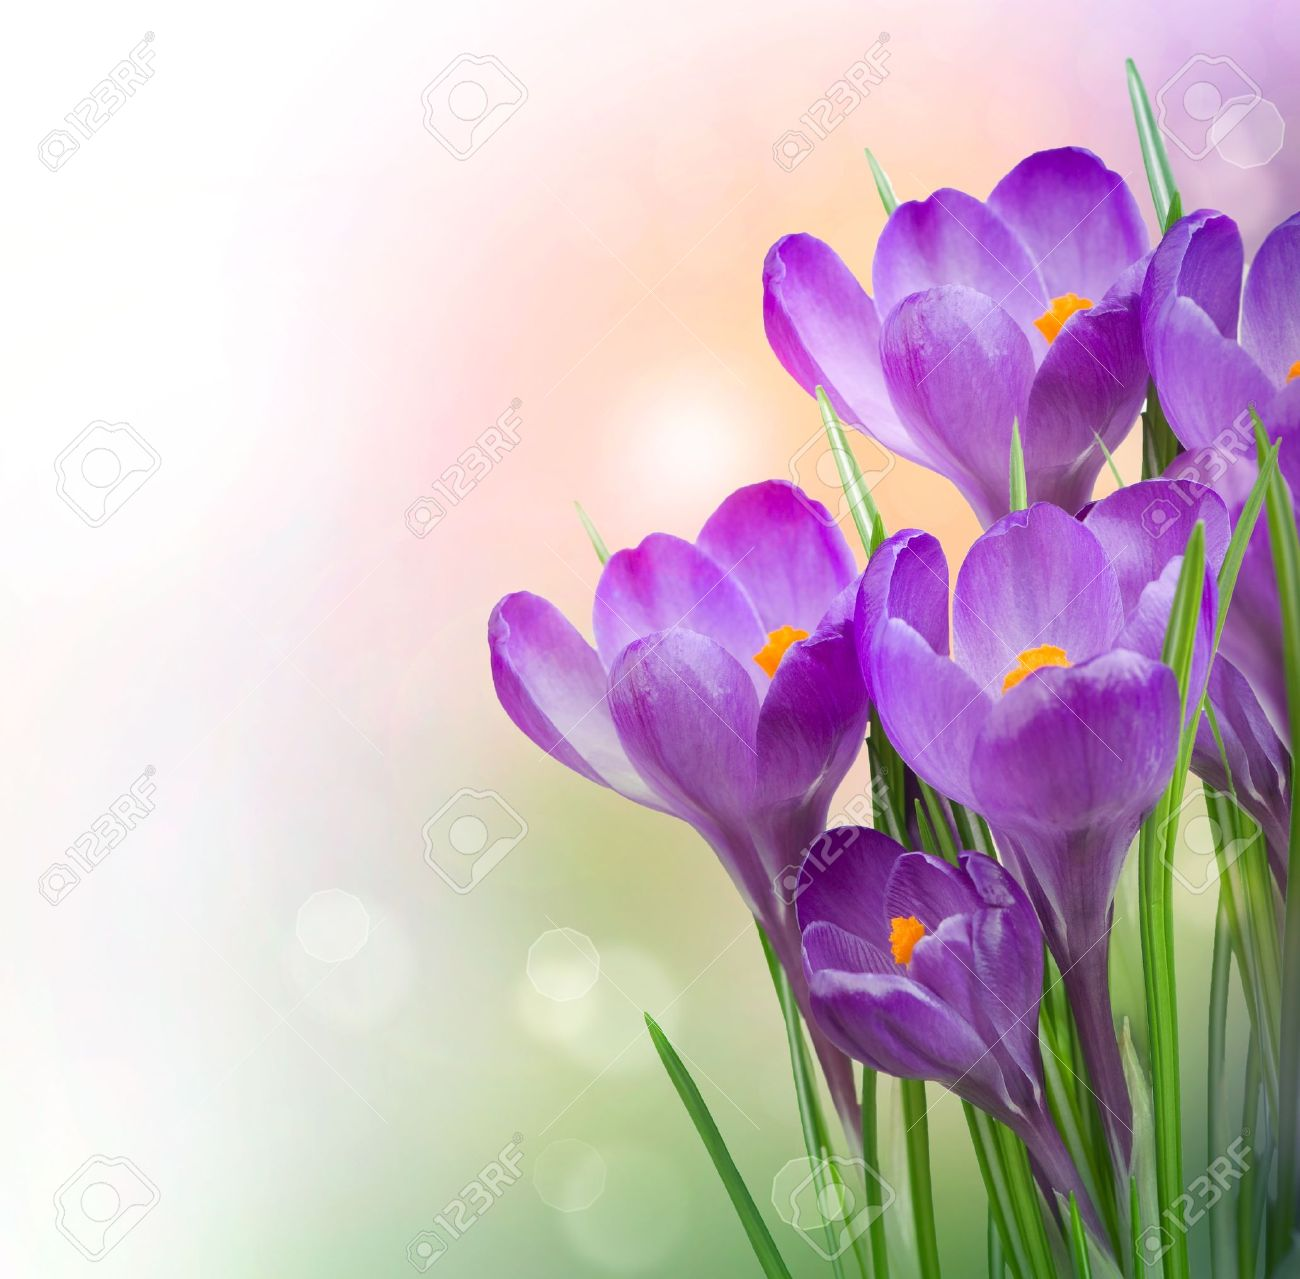 crocus spring flowers stock photo picture and royalty free image